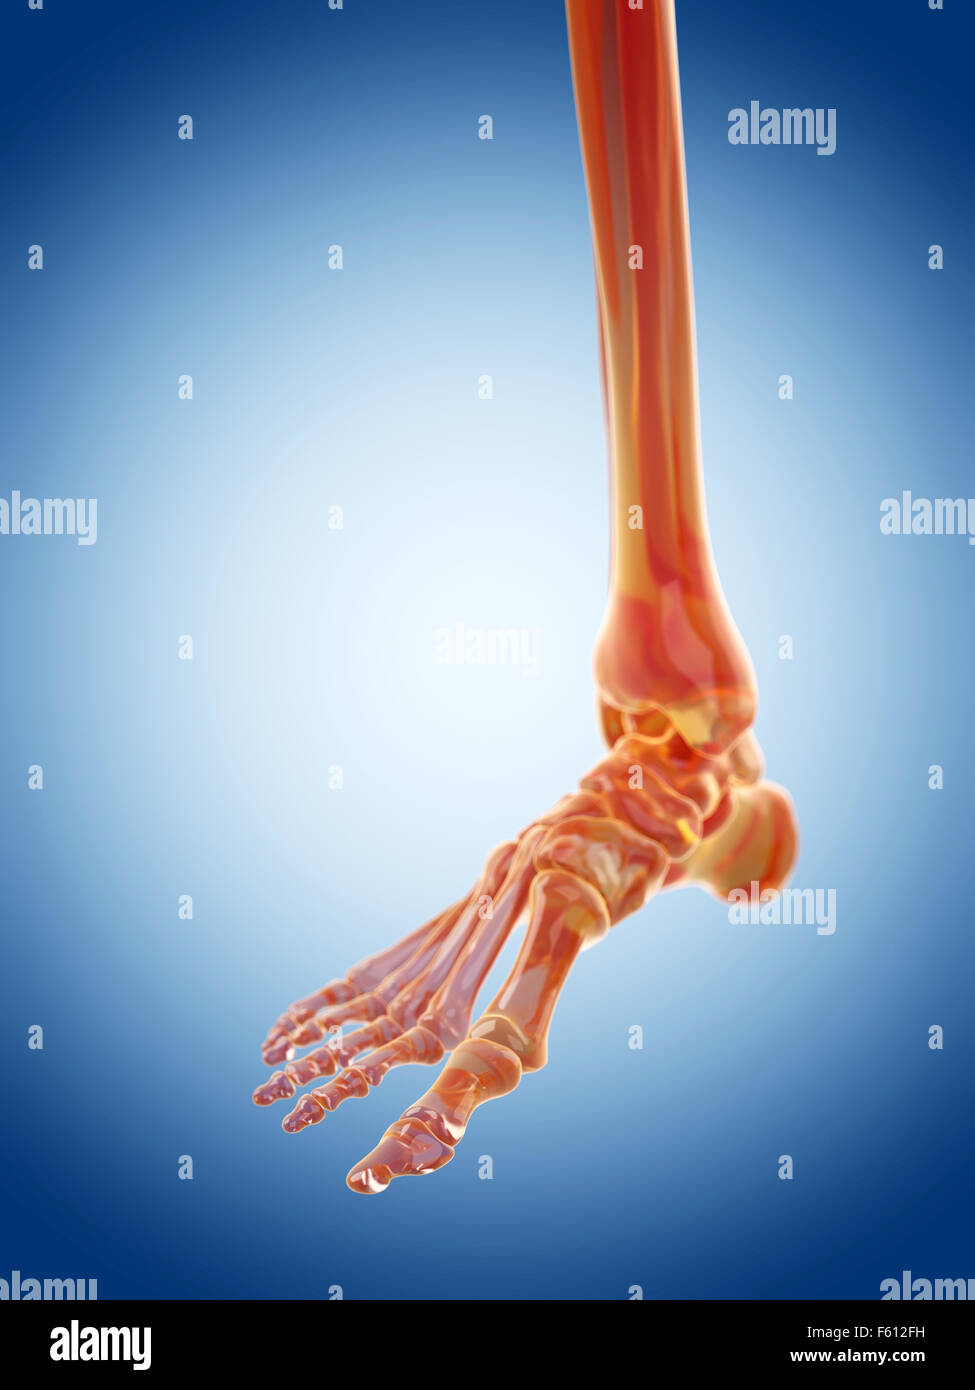 Foot Anatomy Bones Stock Photos Foot Anatomy Bones Stock Images